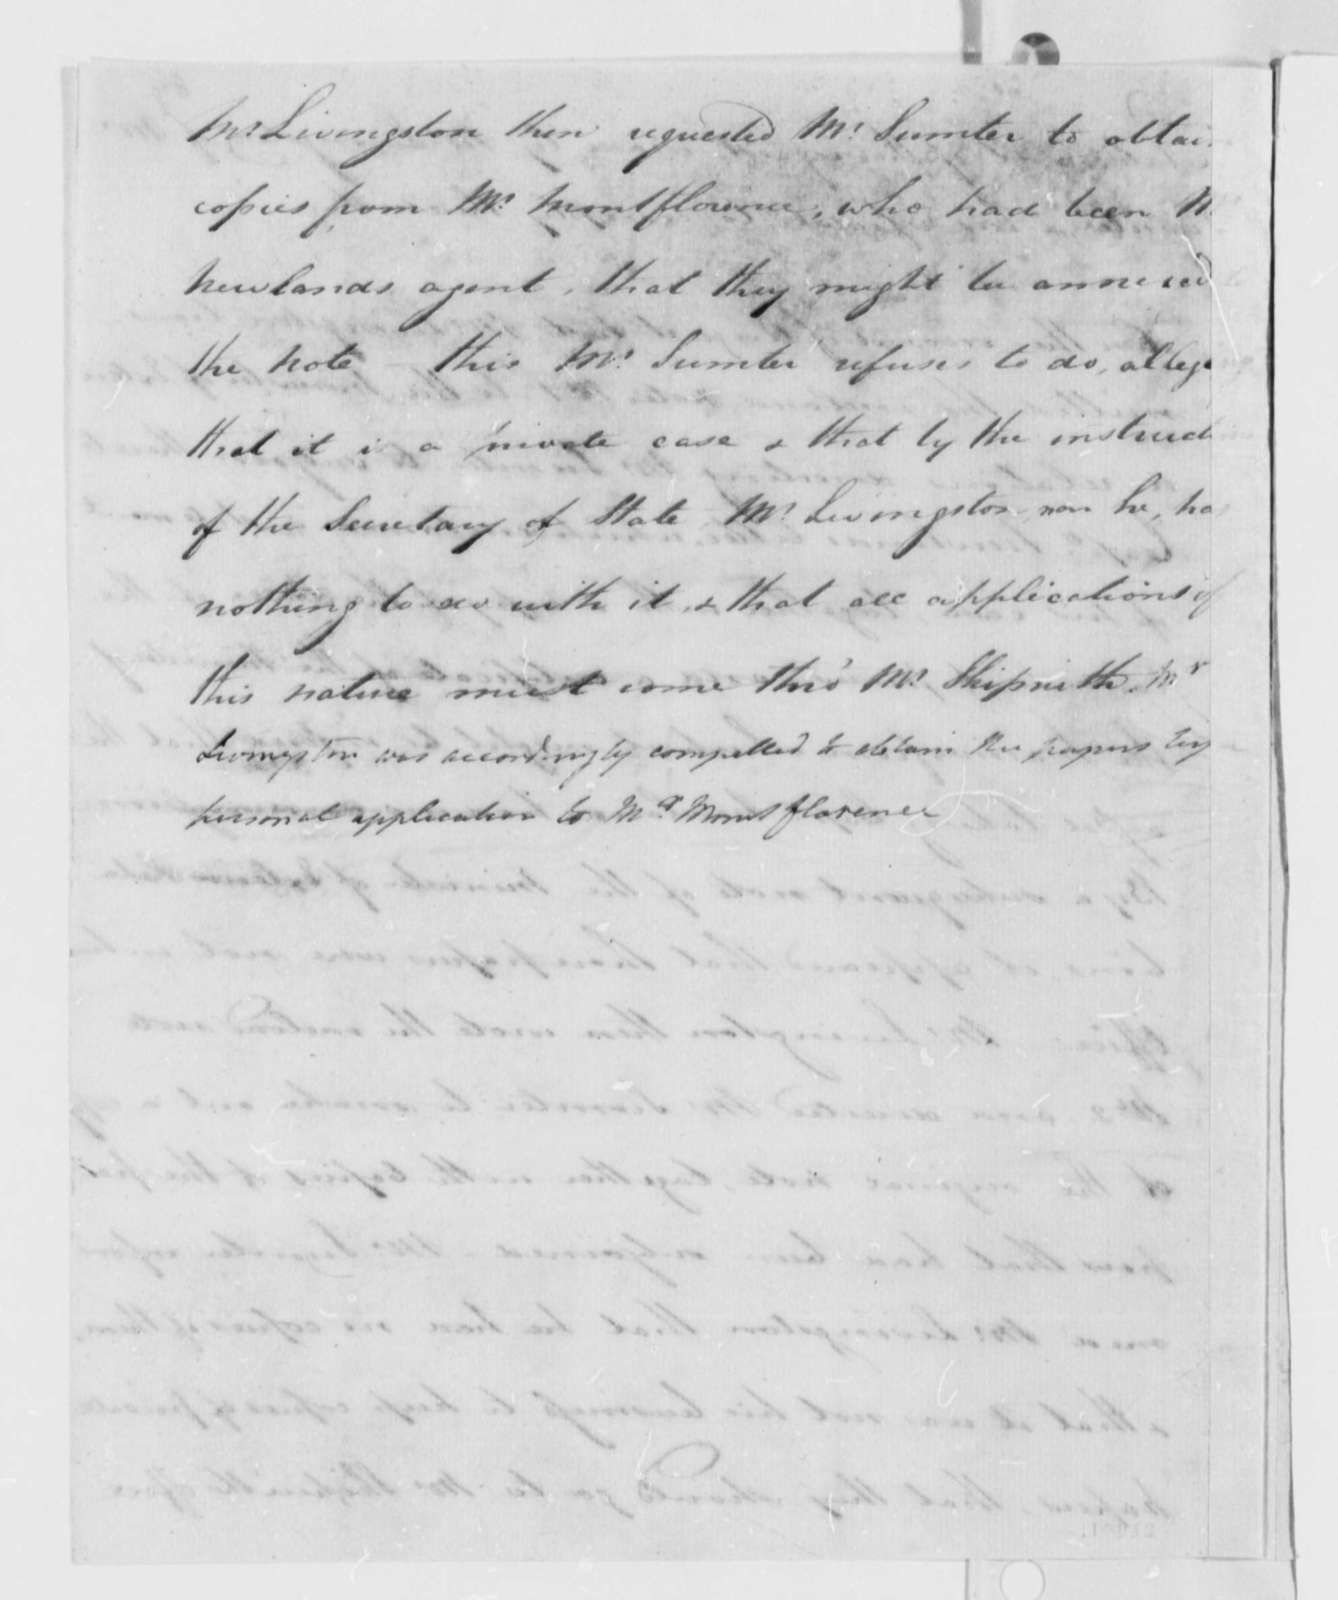 Robert R. Livingston to Thomas Jefferson, October 28, 1802, with Statement